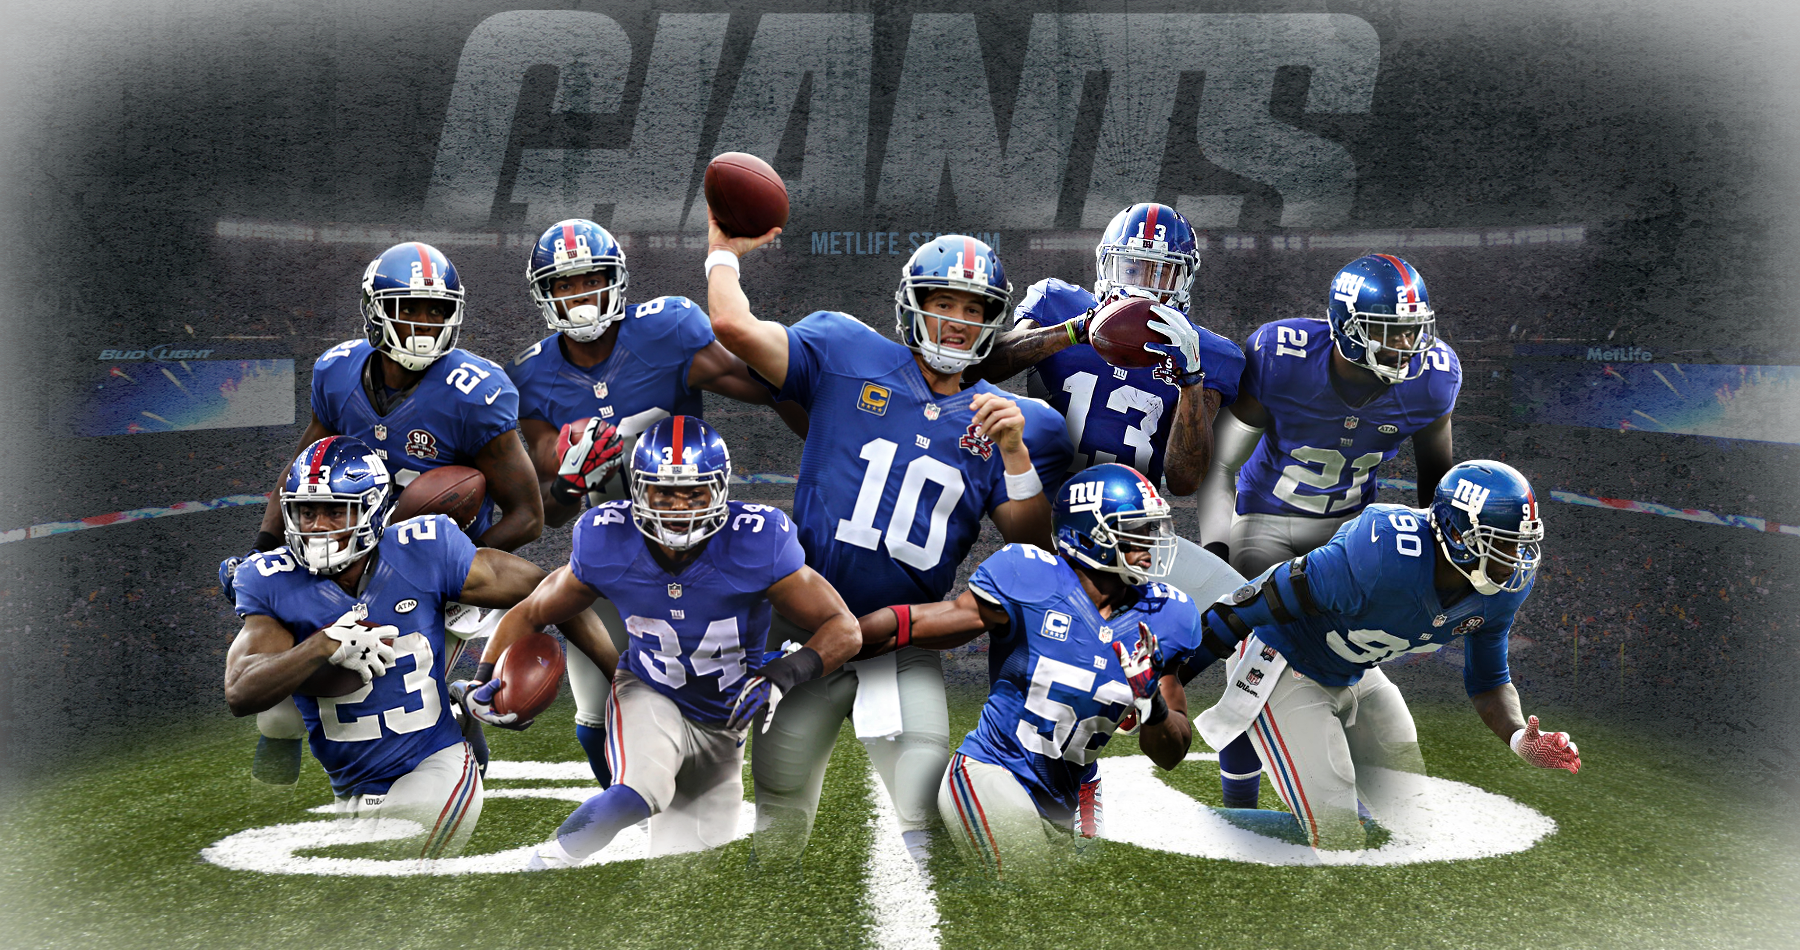 Ny Giants | High Resolution Images